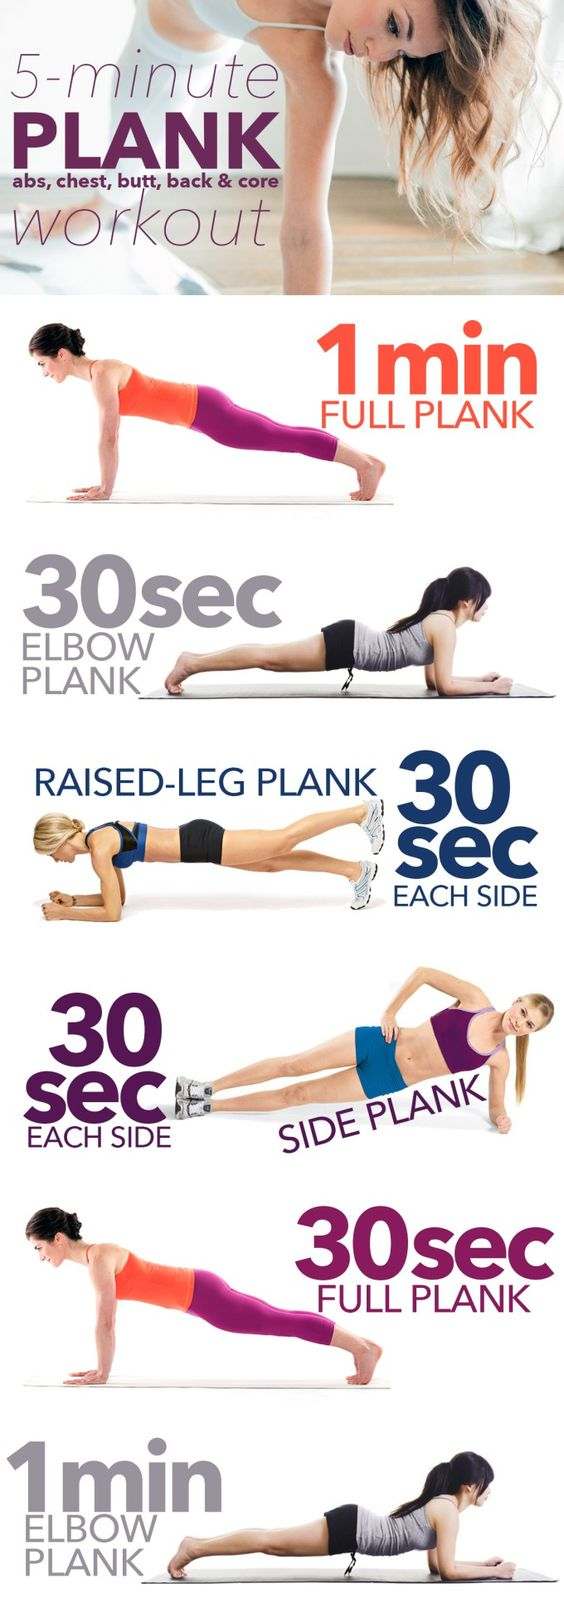 5-minute-plank-workout-infographic: